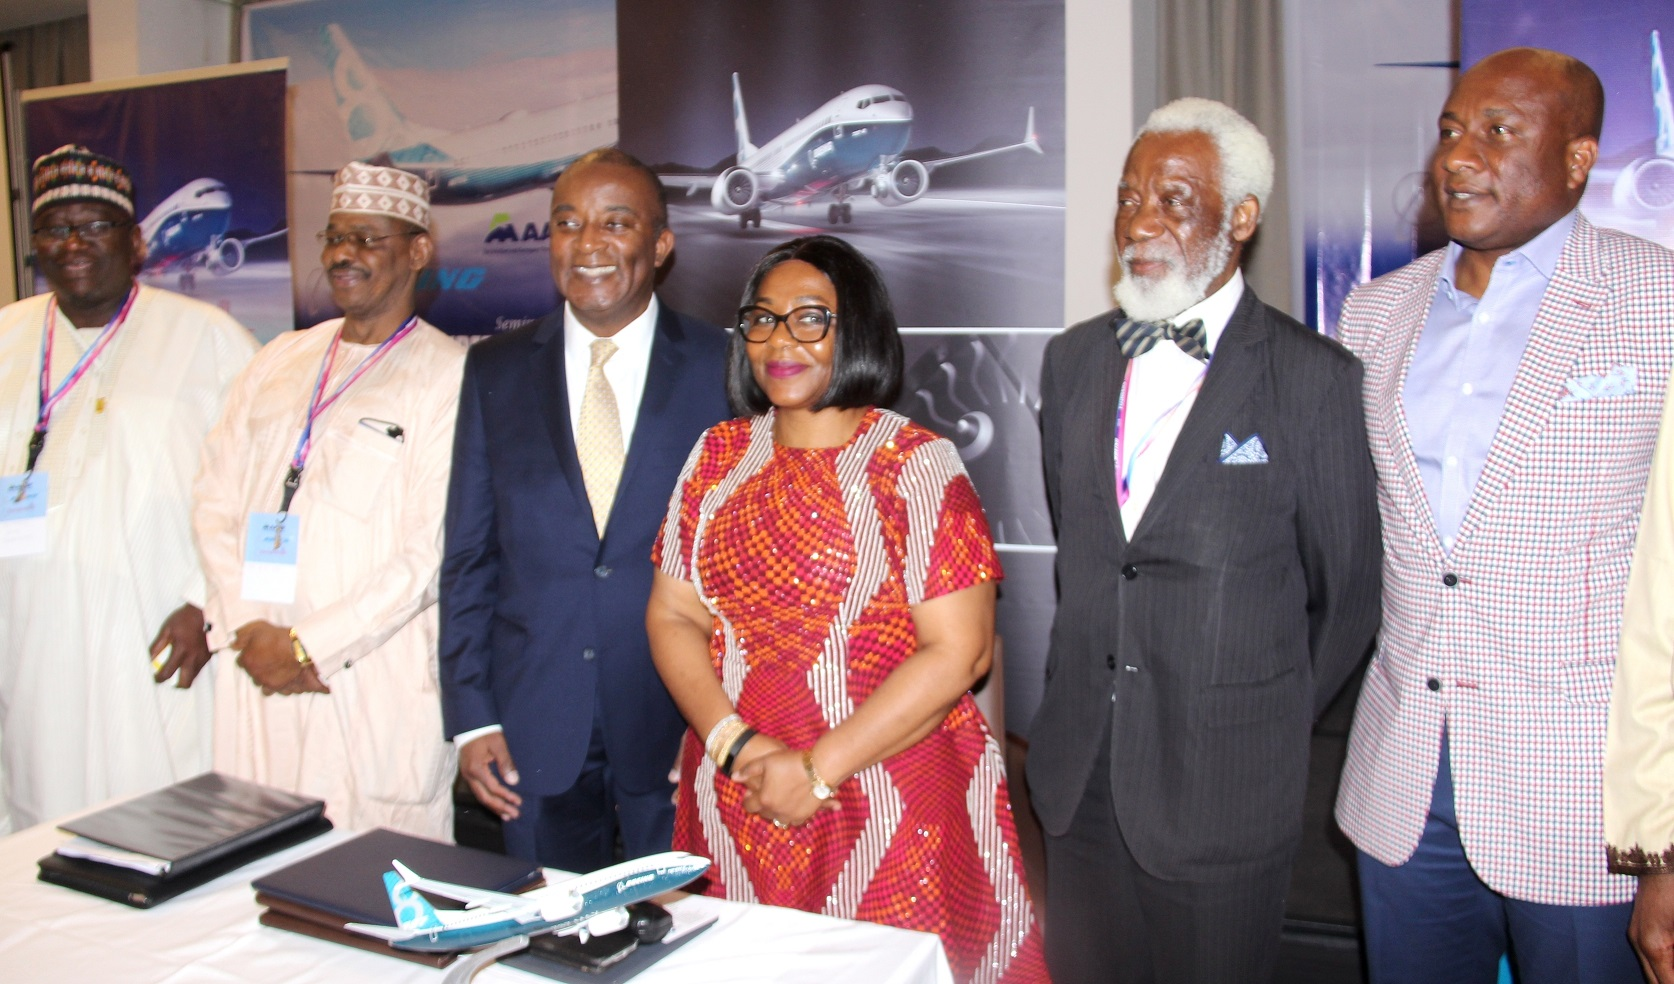 L-R: Chairman, Luban Limited, Alhaji Jani Ibrahim; Representative of Minister for State of Aviation, Director of Operation and Training of Nigerian Civil Aviation Authority, Capt. Sidi Abdullahi; Sales Director, West Africa Commercial Airplanes, Boeing, Mr. Larry Tolliver; Executive Director, Spring Fountain, Mrs. Tokunbo Fagbemi; Special Guest, Chief Femi Olopade and Chairman, Air Peace, Mr. Alen Onyema, during the Seminar on 2017 Expanded Horizon Conference theme: Aviation Education Infrastructure Challenges and Potential and the signing of agreement ceremony between Boeing and Springfountain in Lagos